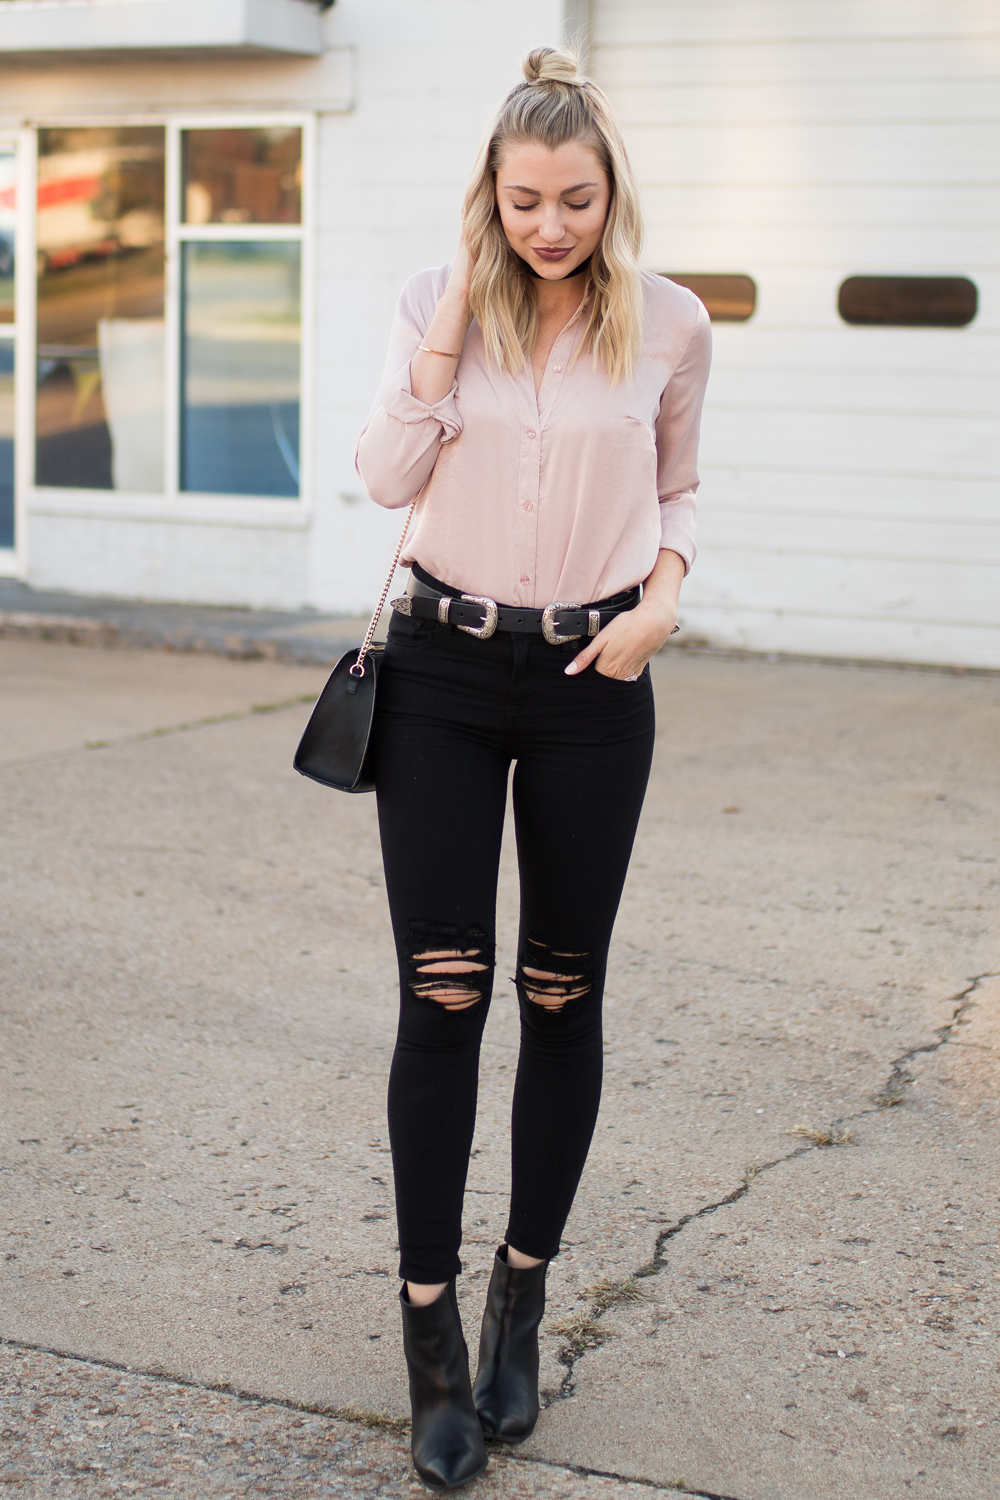 Black distressed skinny jeans from Express